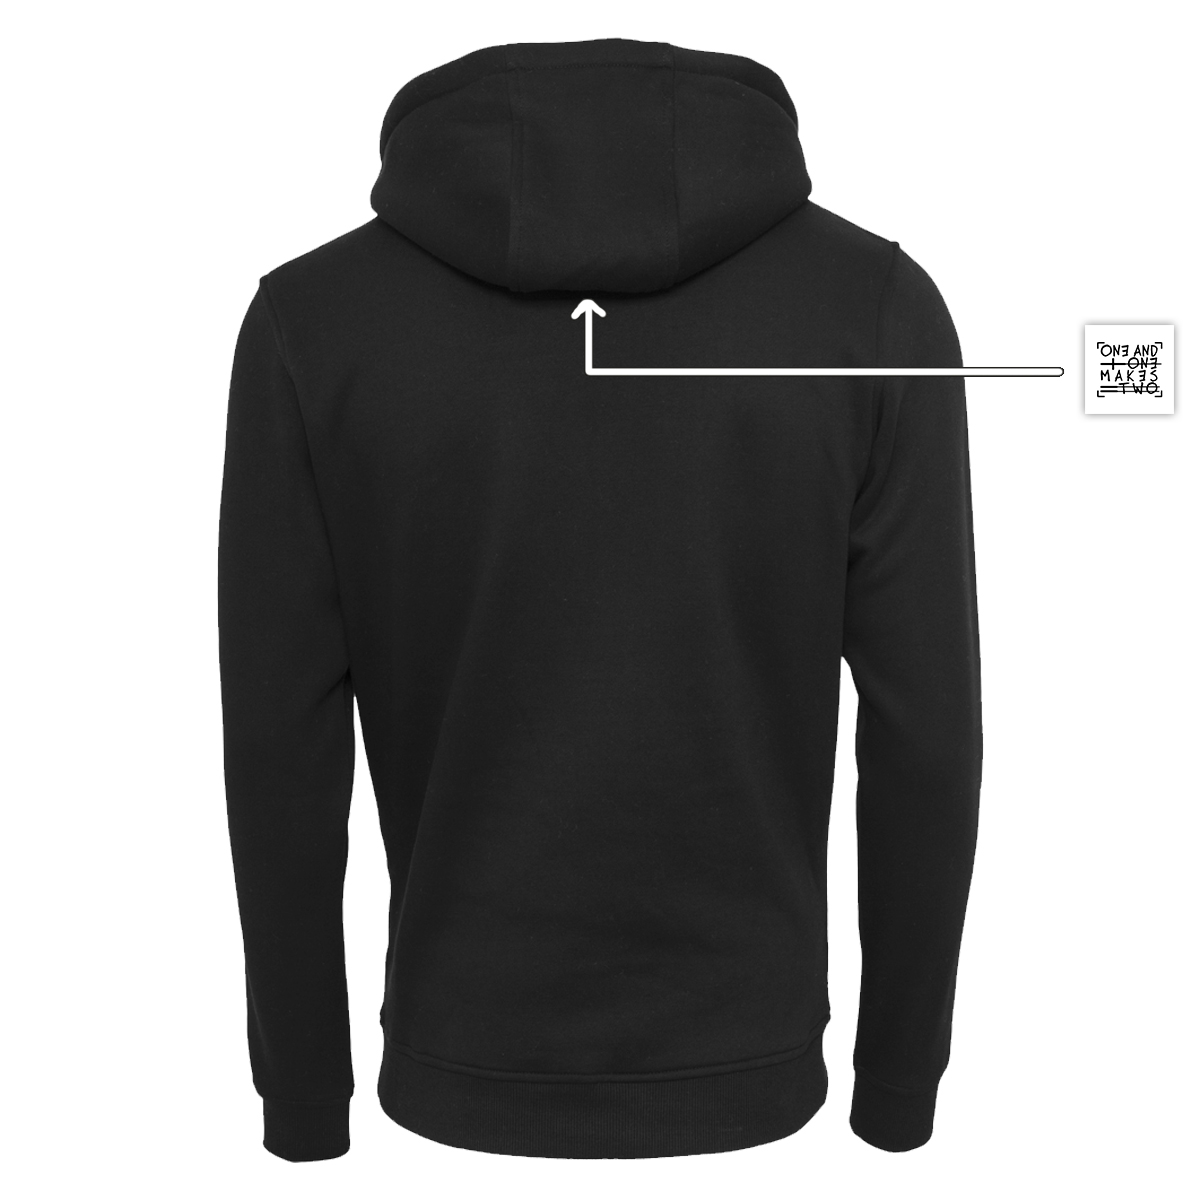 ONE AND ONE MAKES TWO - hoodie back - Caring Community